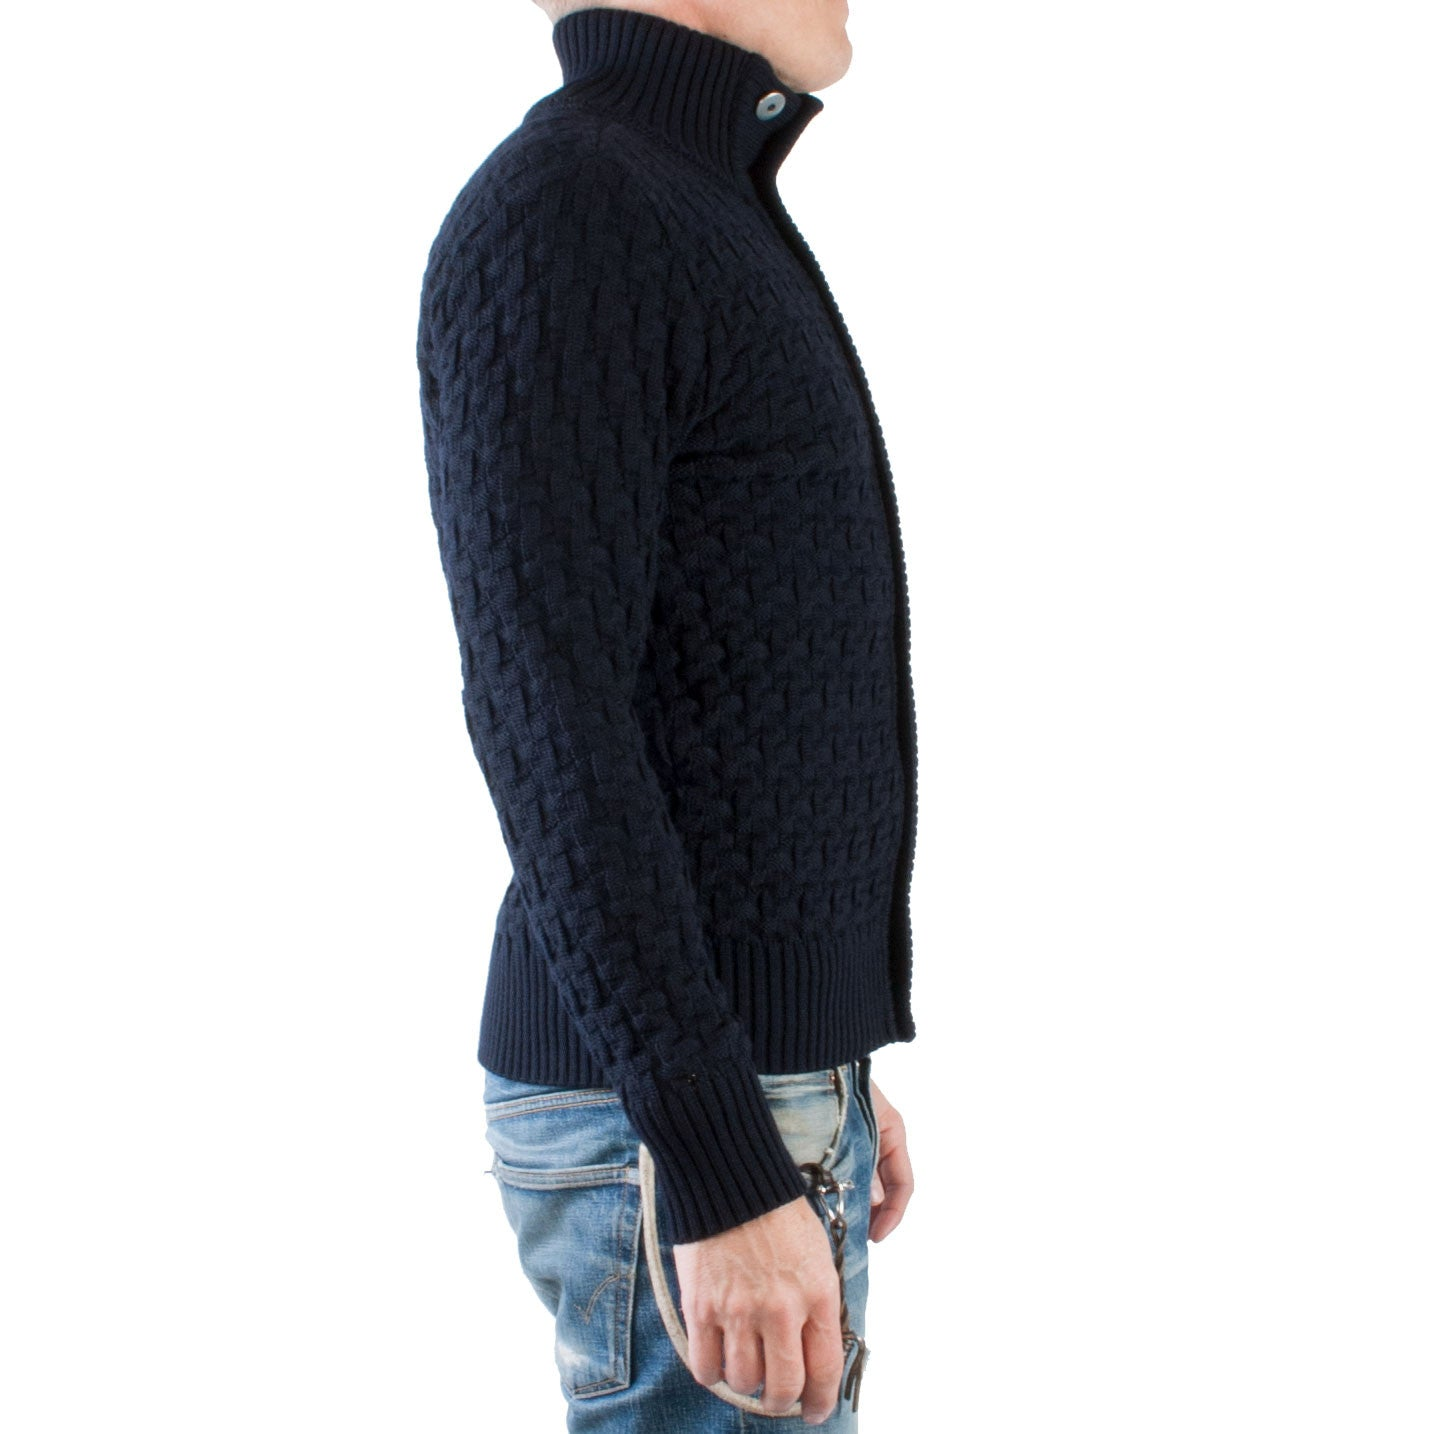 S.N.S. Herning Stark Cardigan (Navy blue) - Brund - 3